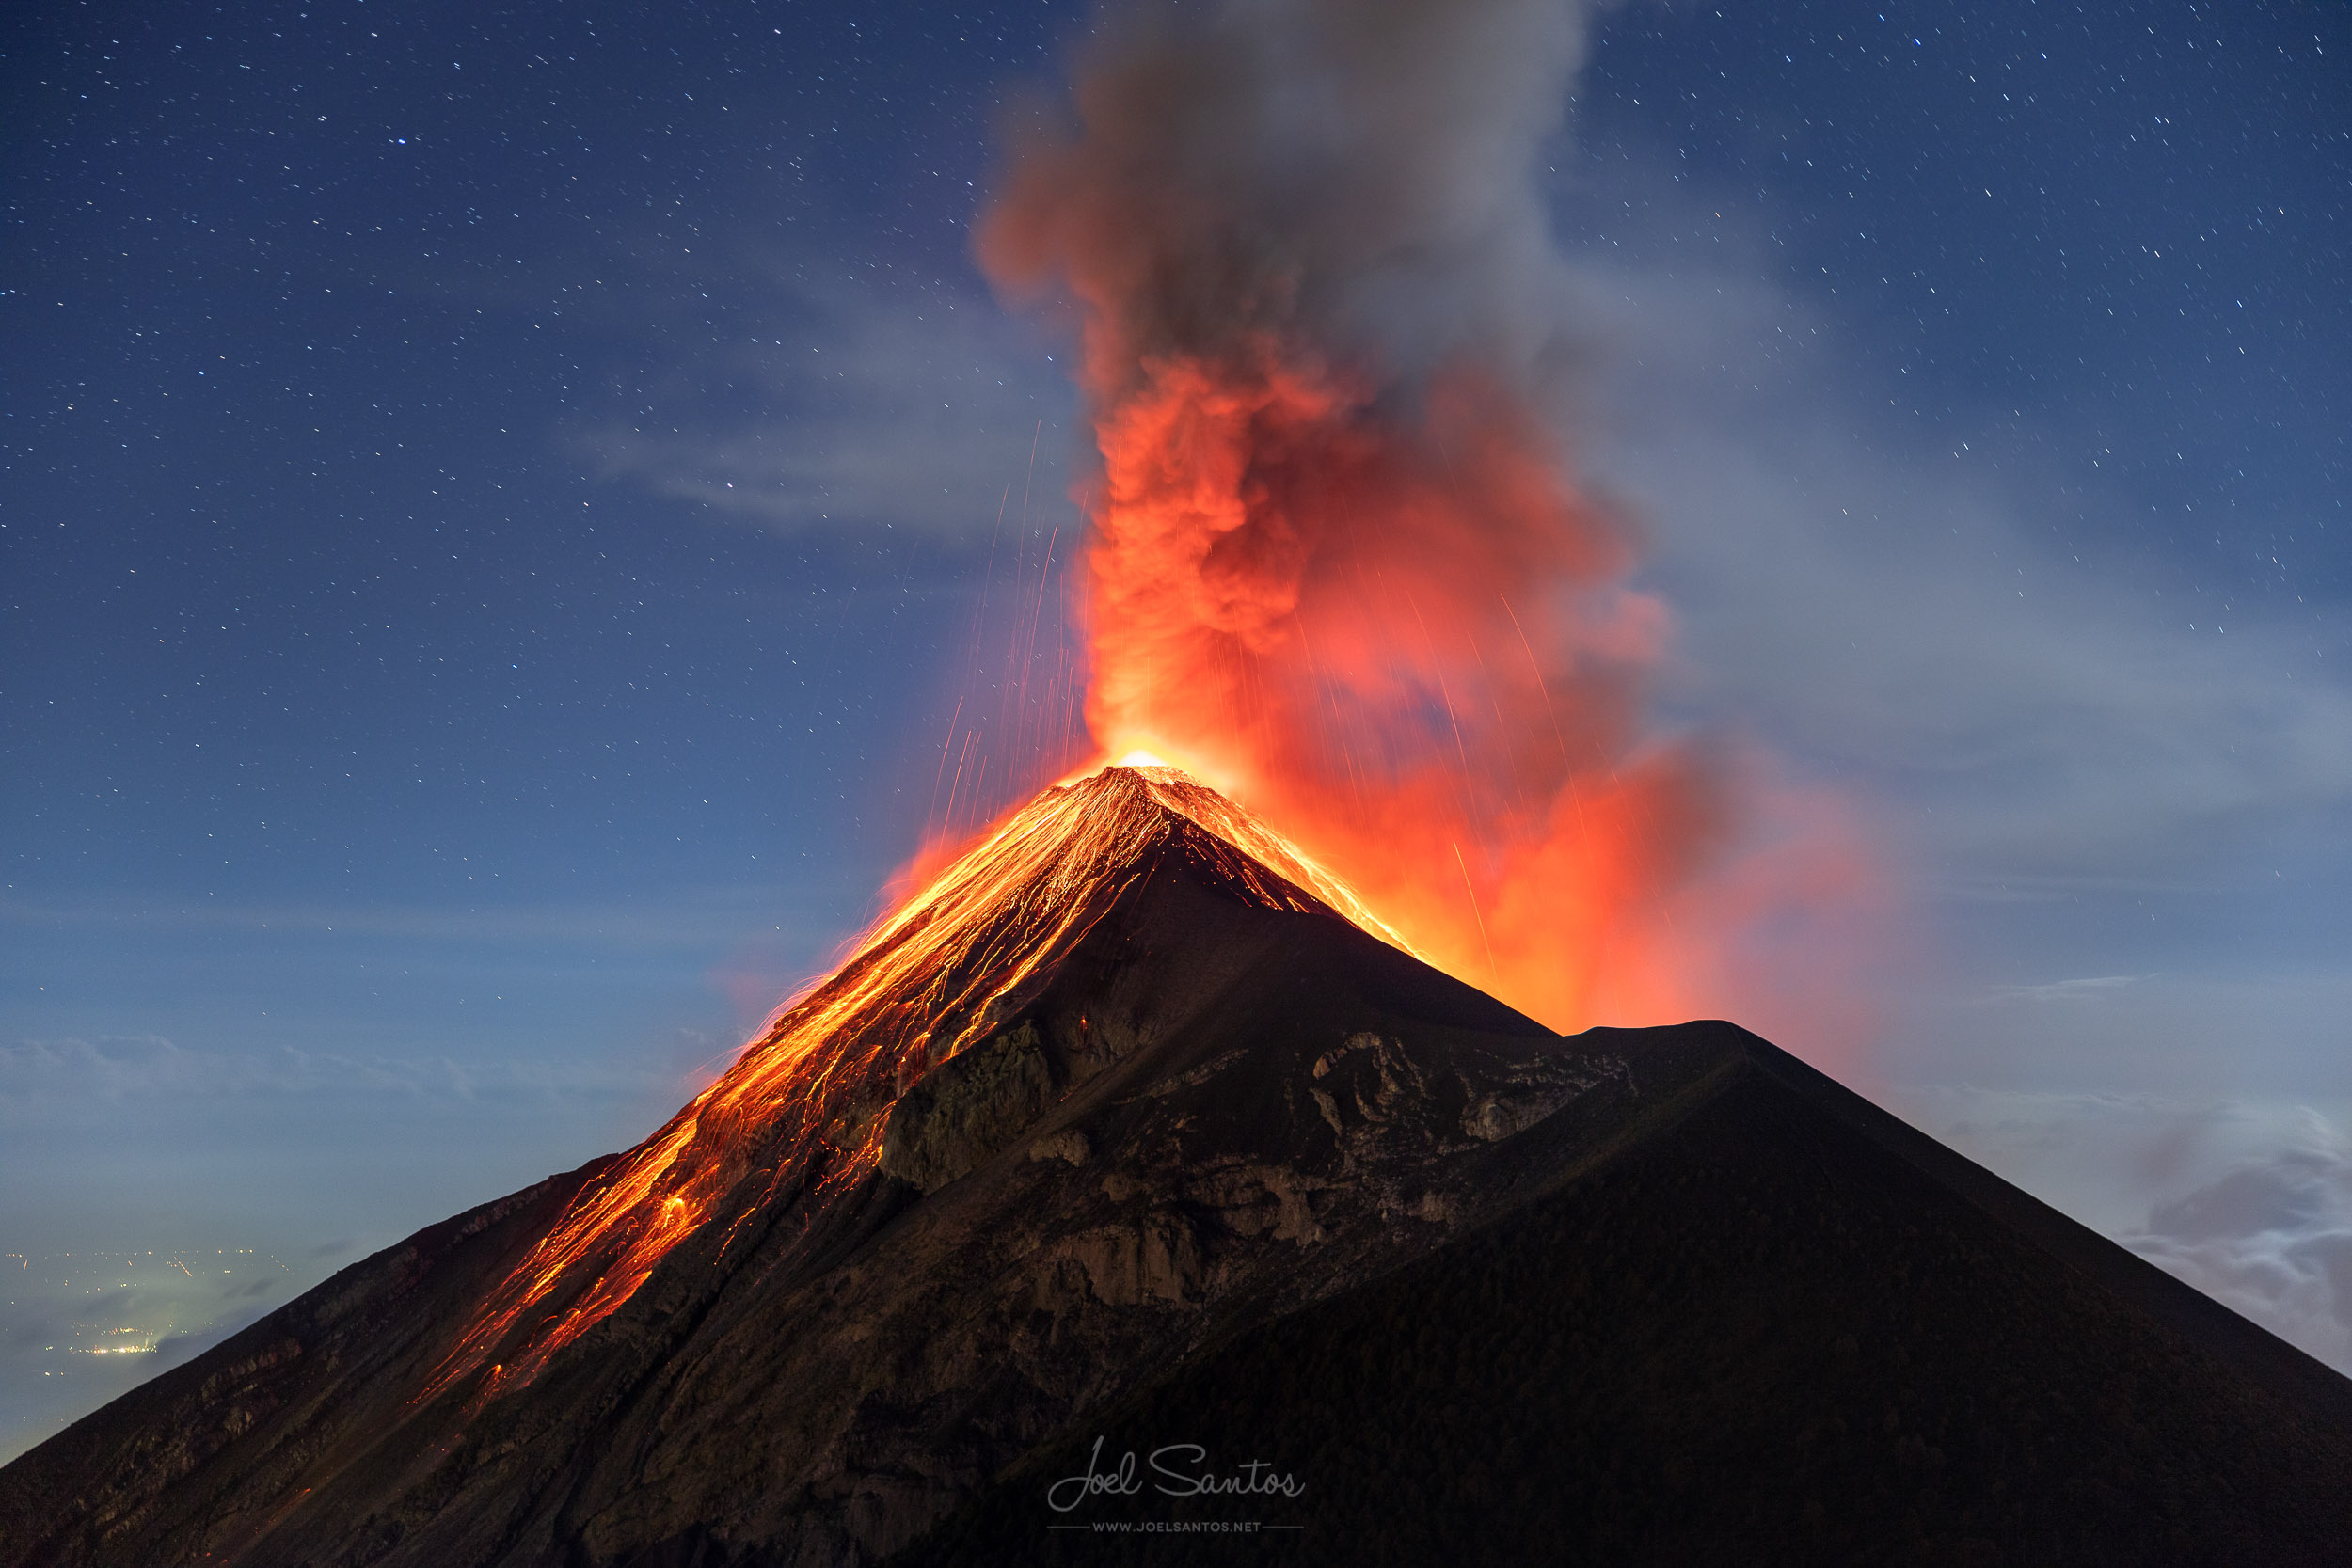 VOLCANOES - SCULPTING THE EARTH THROUGH FIRE